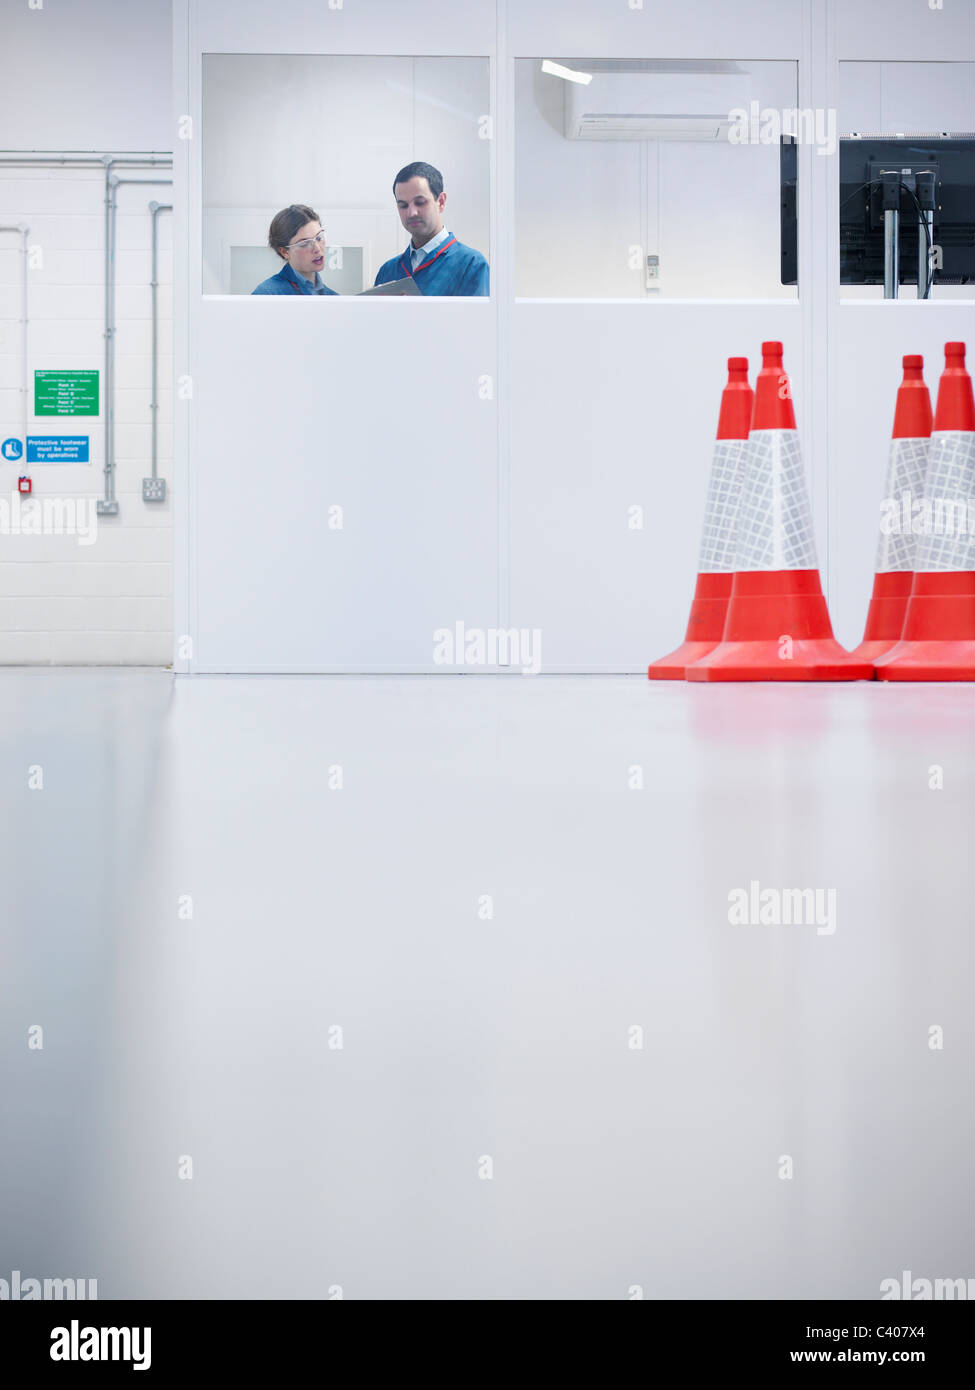 Workers in office with hazard cones - Stock Image